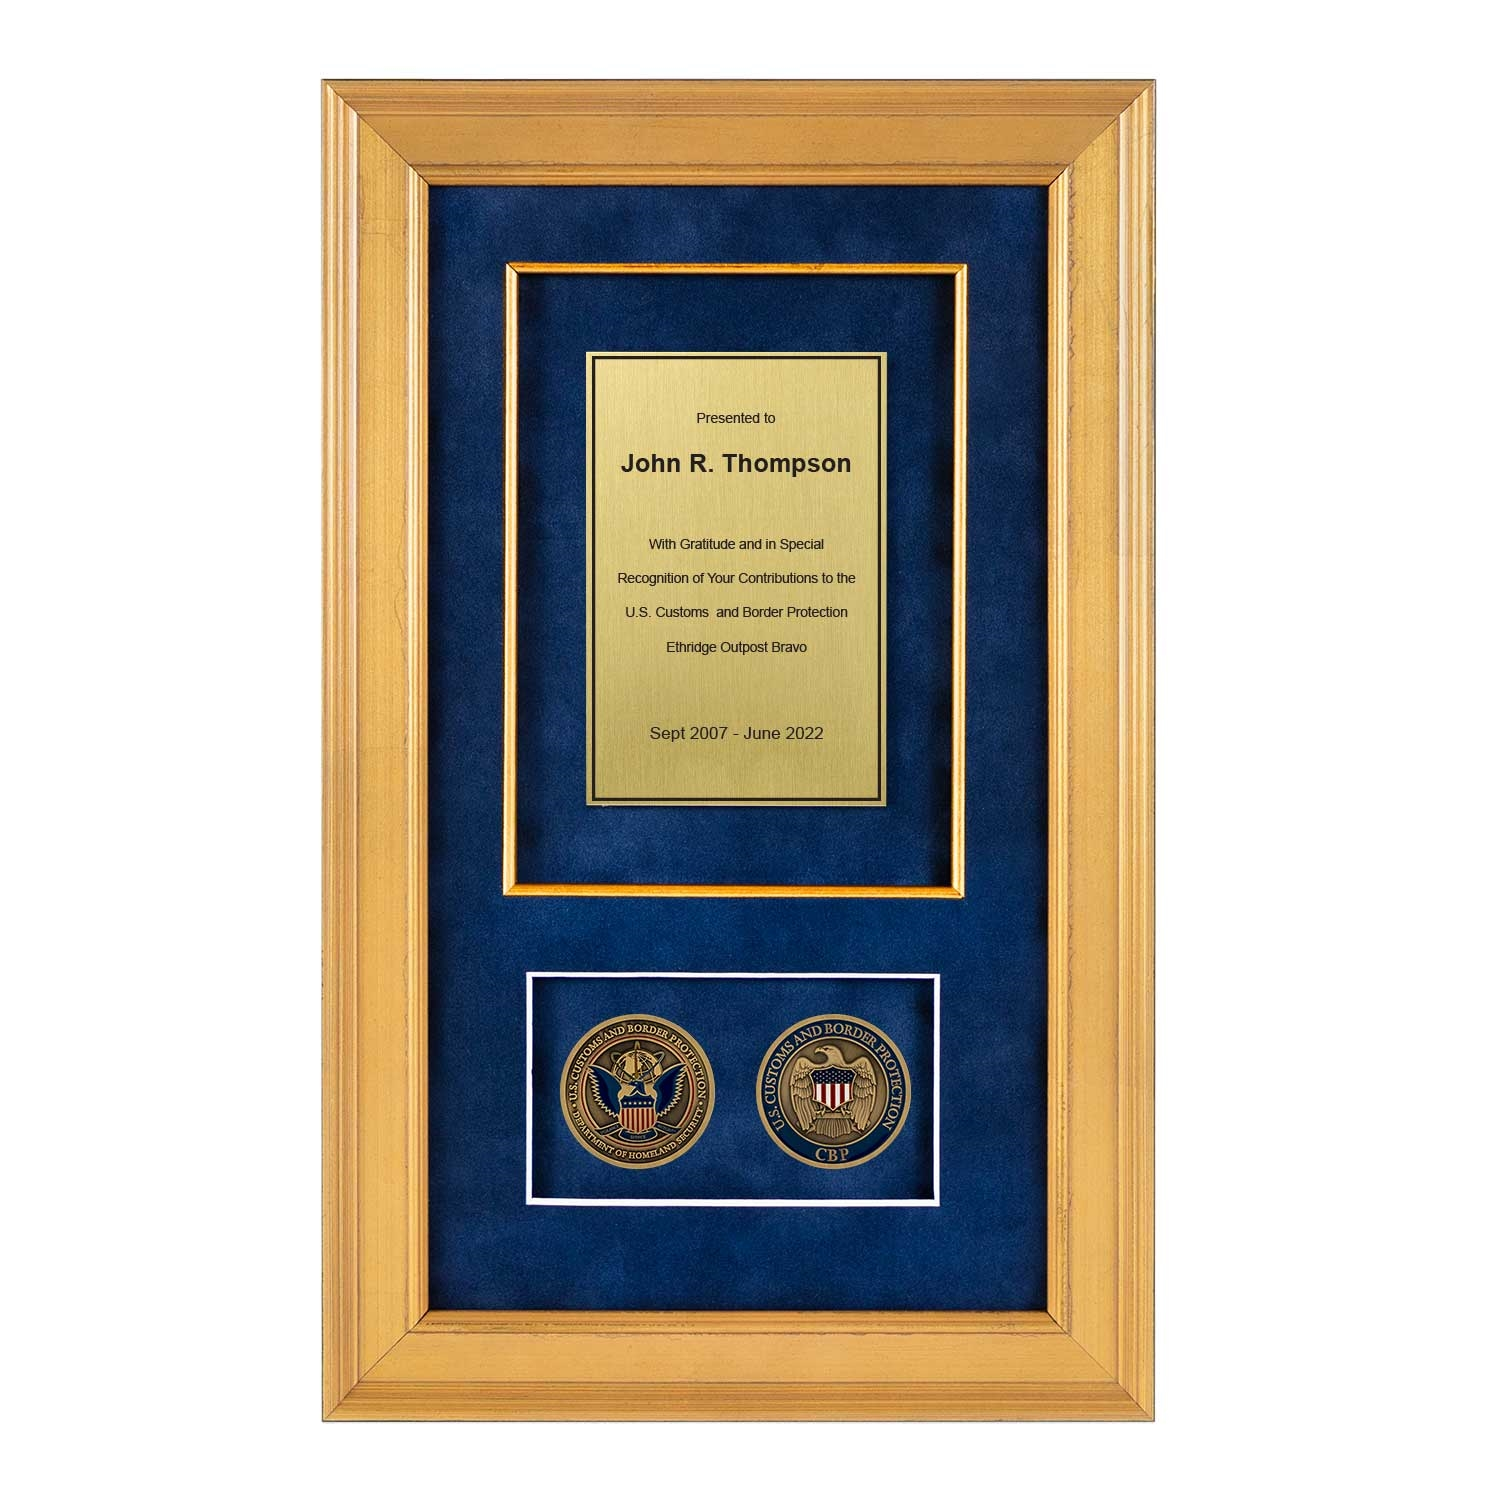 Cbp Shadow Box With 2 Coins 226 Gold Frame